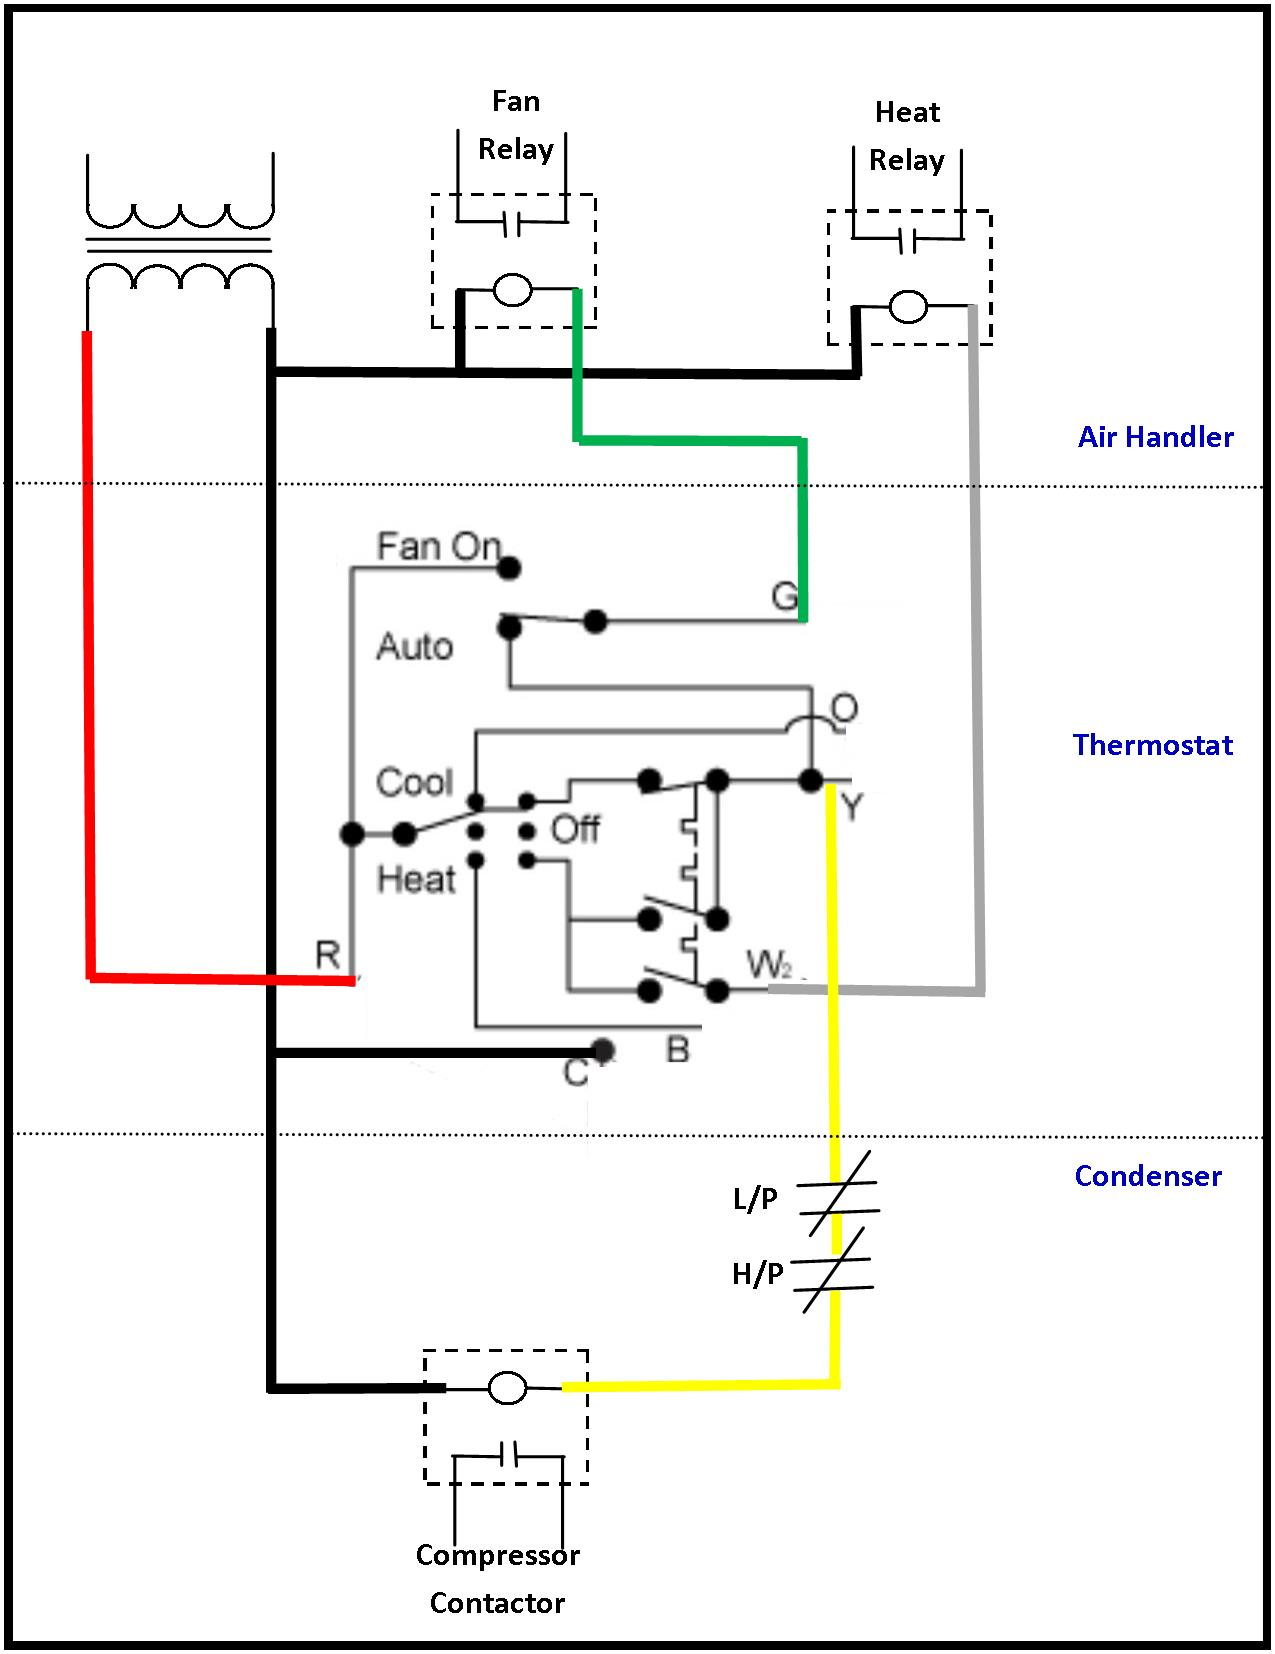 AC low voltage wiring diagram1?resize\\\\\\\\\\\\\\\\\\\\\\\\\\\=1275%2C1654 copelametic refrigeration wiring diagram wiring diagrams  at crackthecode.co